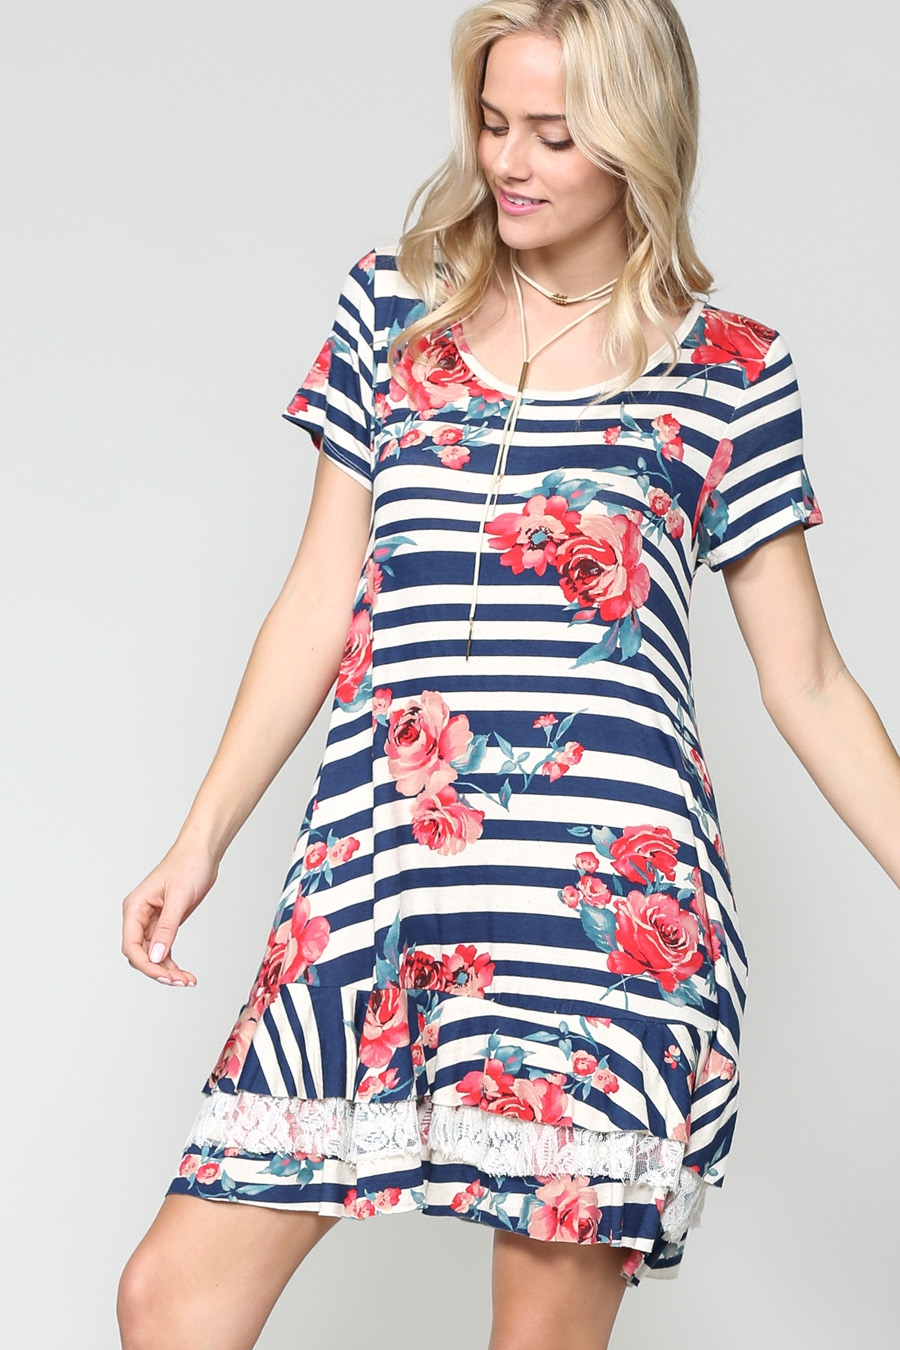 FLORAL STRIPED RUFFLE HEM DRESS - orangeshine.com